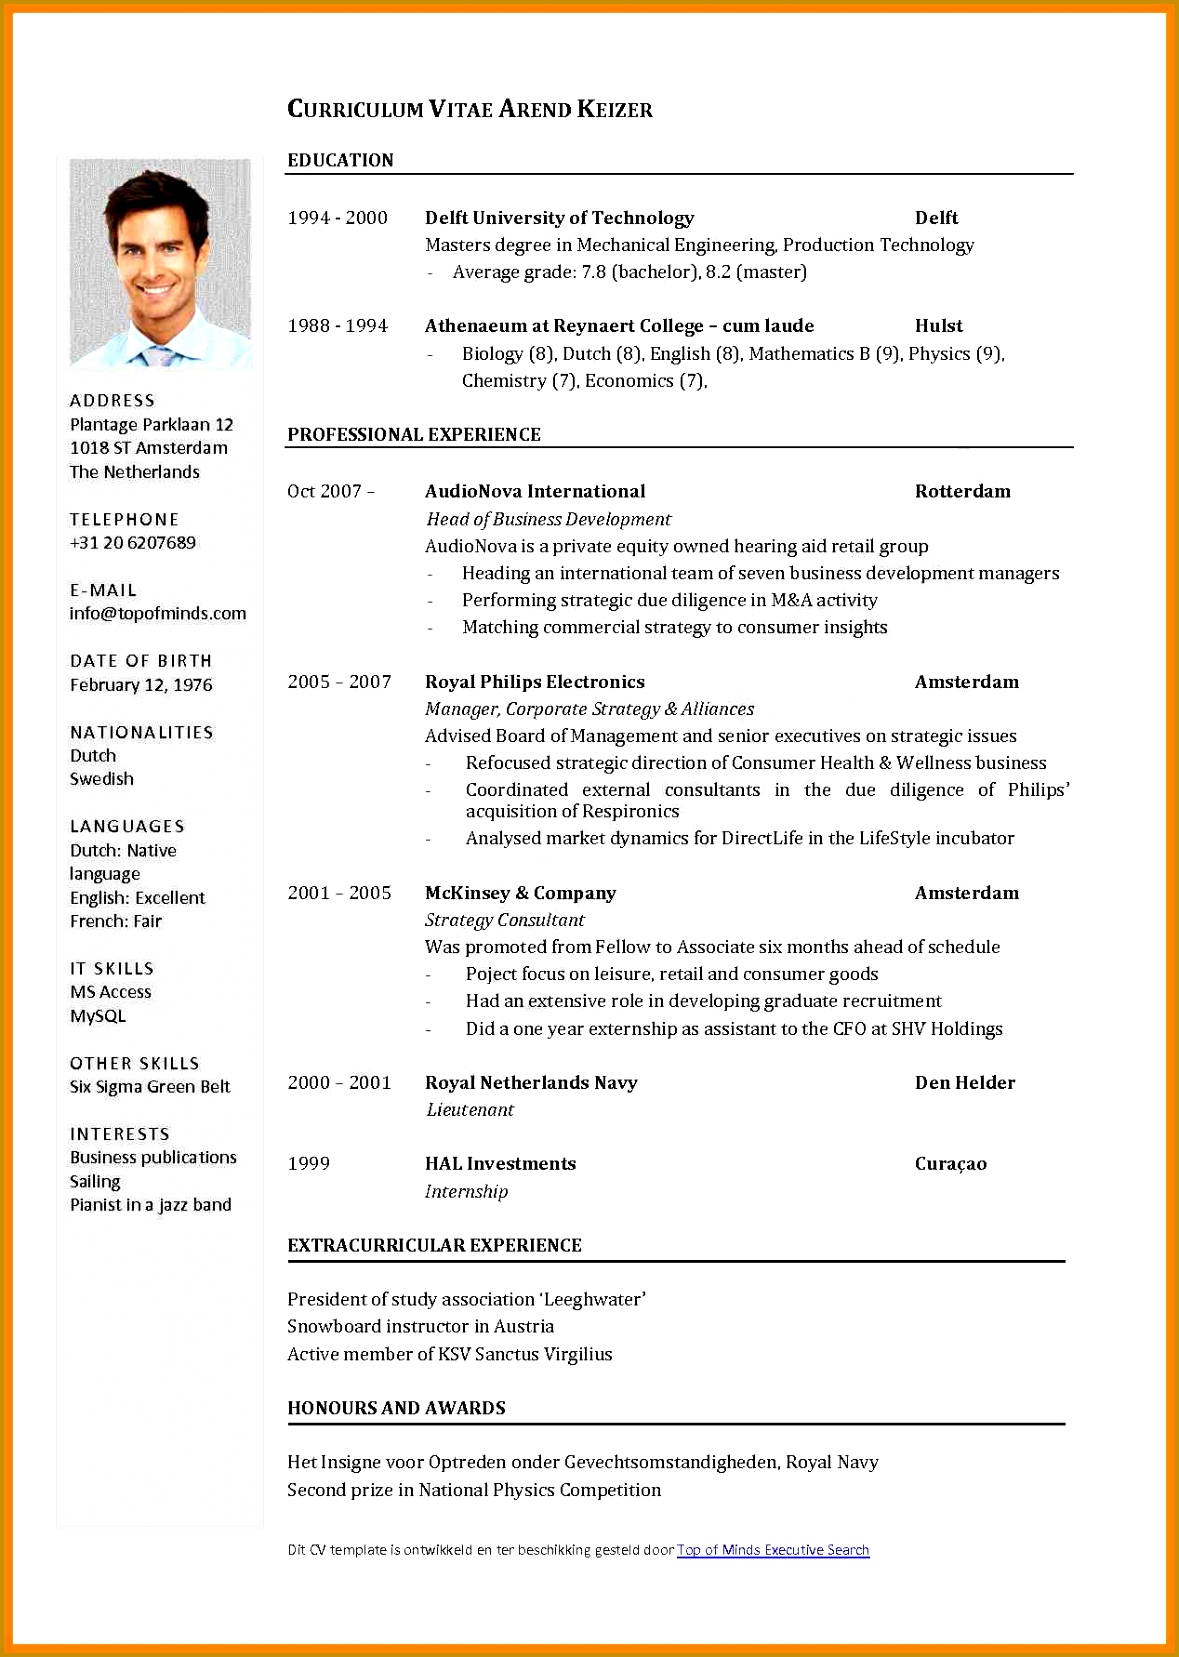 Curriculum Vitae Template Sample Cv Format Doc Free Download Sample Cv Template 11 Simple Cv Format Download Production Schedule Template 8 Free 16571179